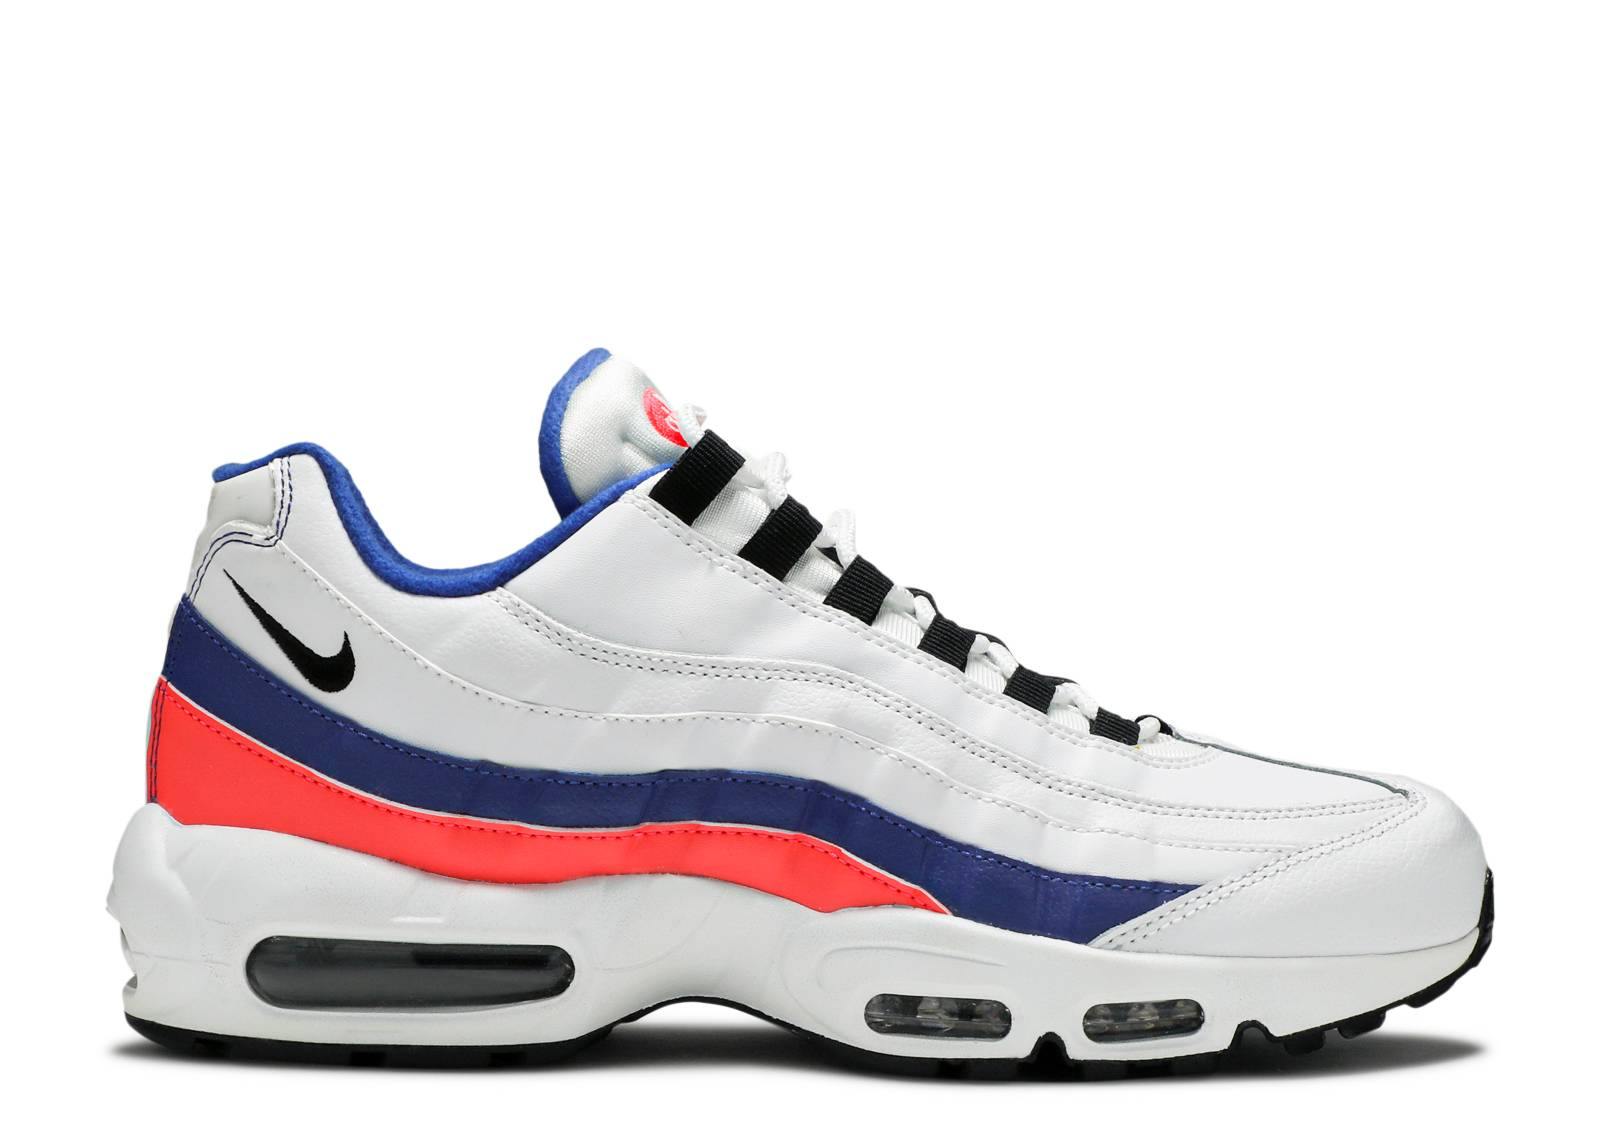 54de45a553 Air Max 95 Essential - Nike - 749766 106 - white/black-solar red ...